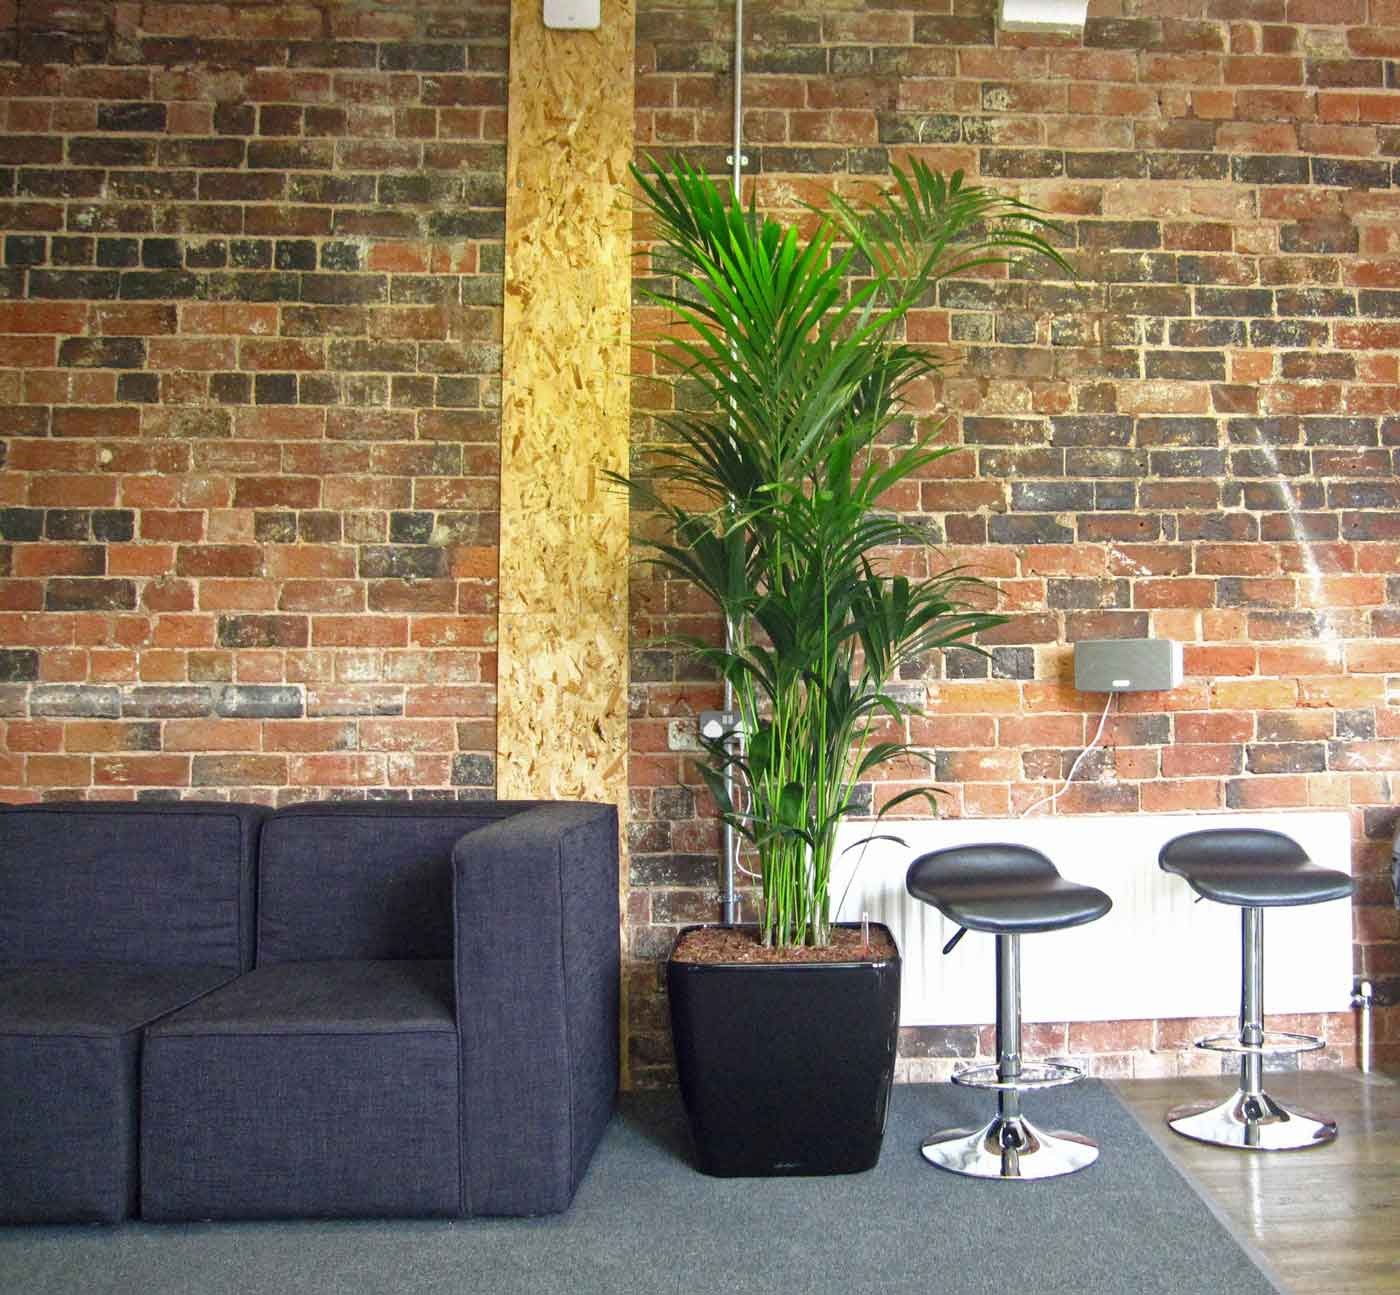 informal green wall indoors. Informal Meeting And Breakout Area With A Bushy Kentia Palm Display Green Wall Indoors